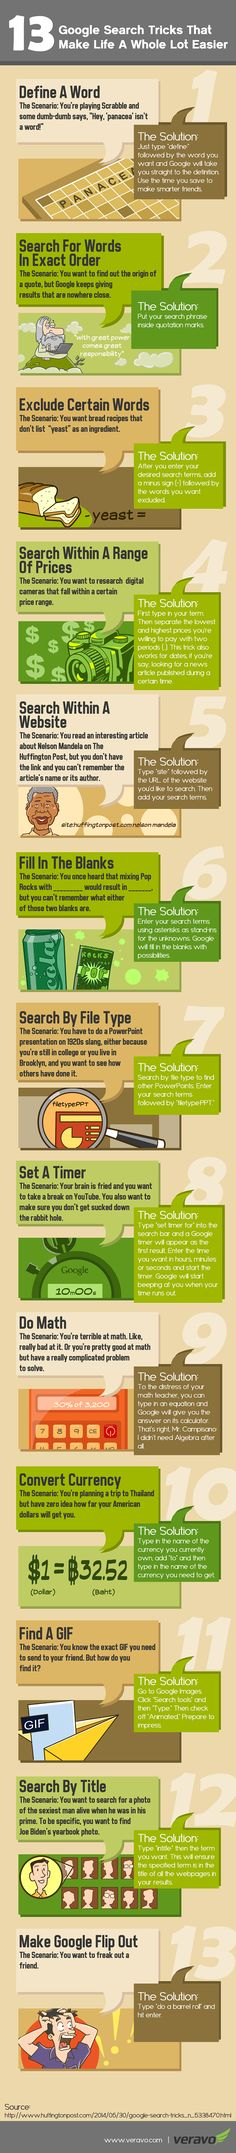 #Google search tips #technology